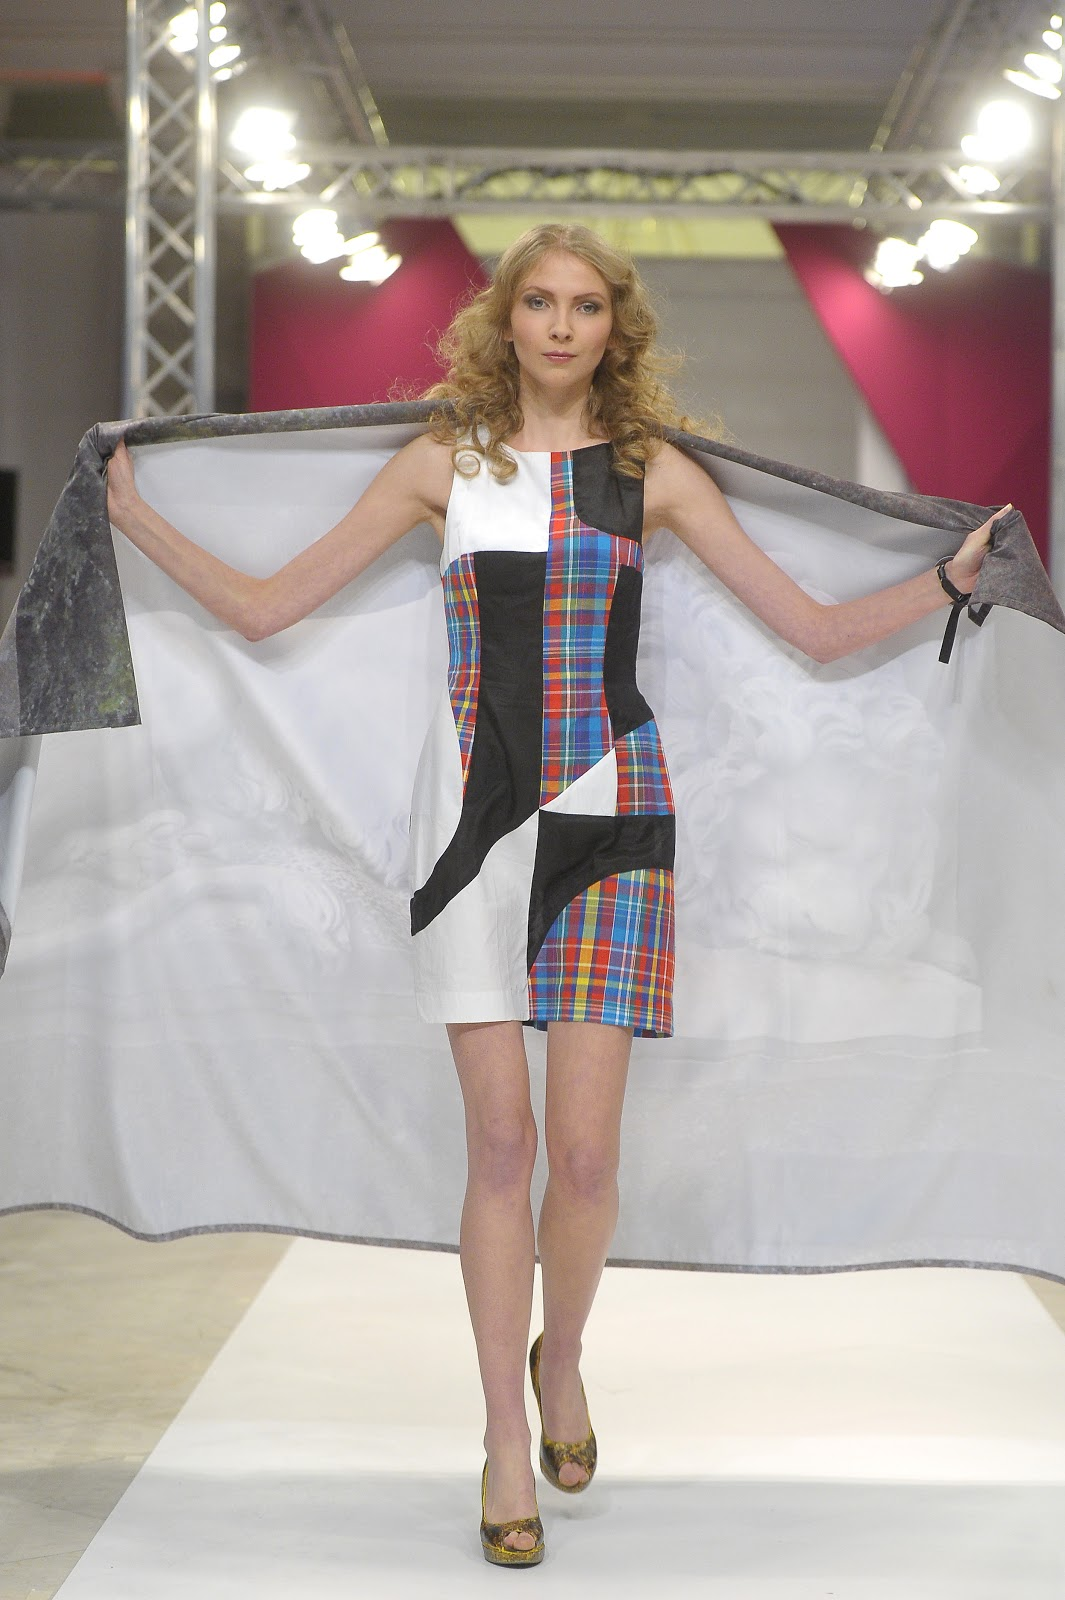 akpa20130130_lg_fashion_tv_2237.jpg